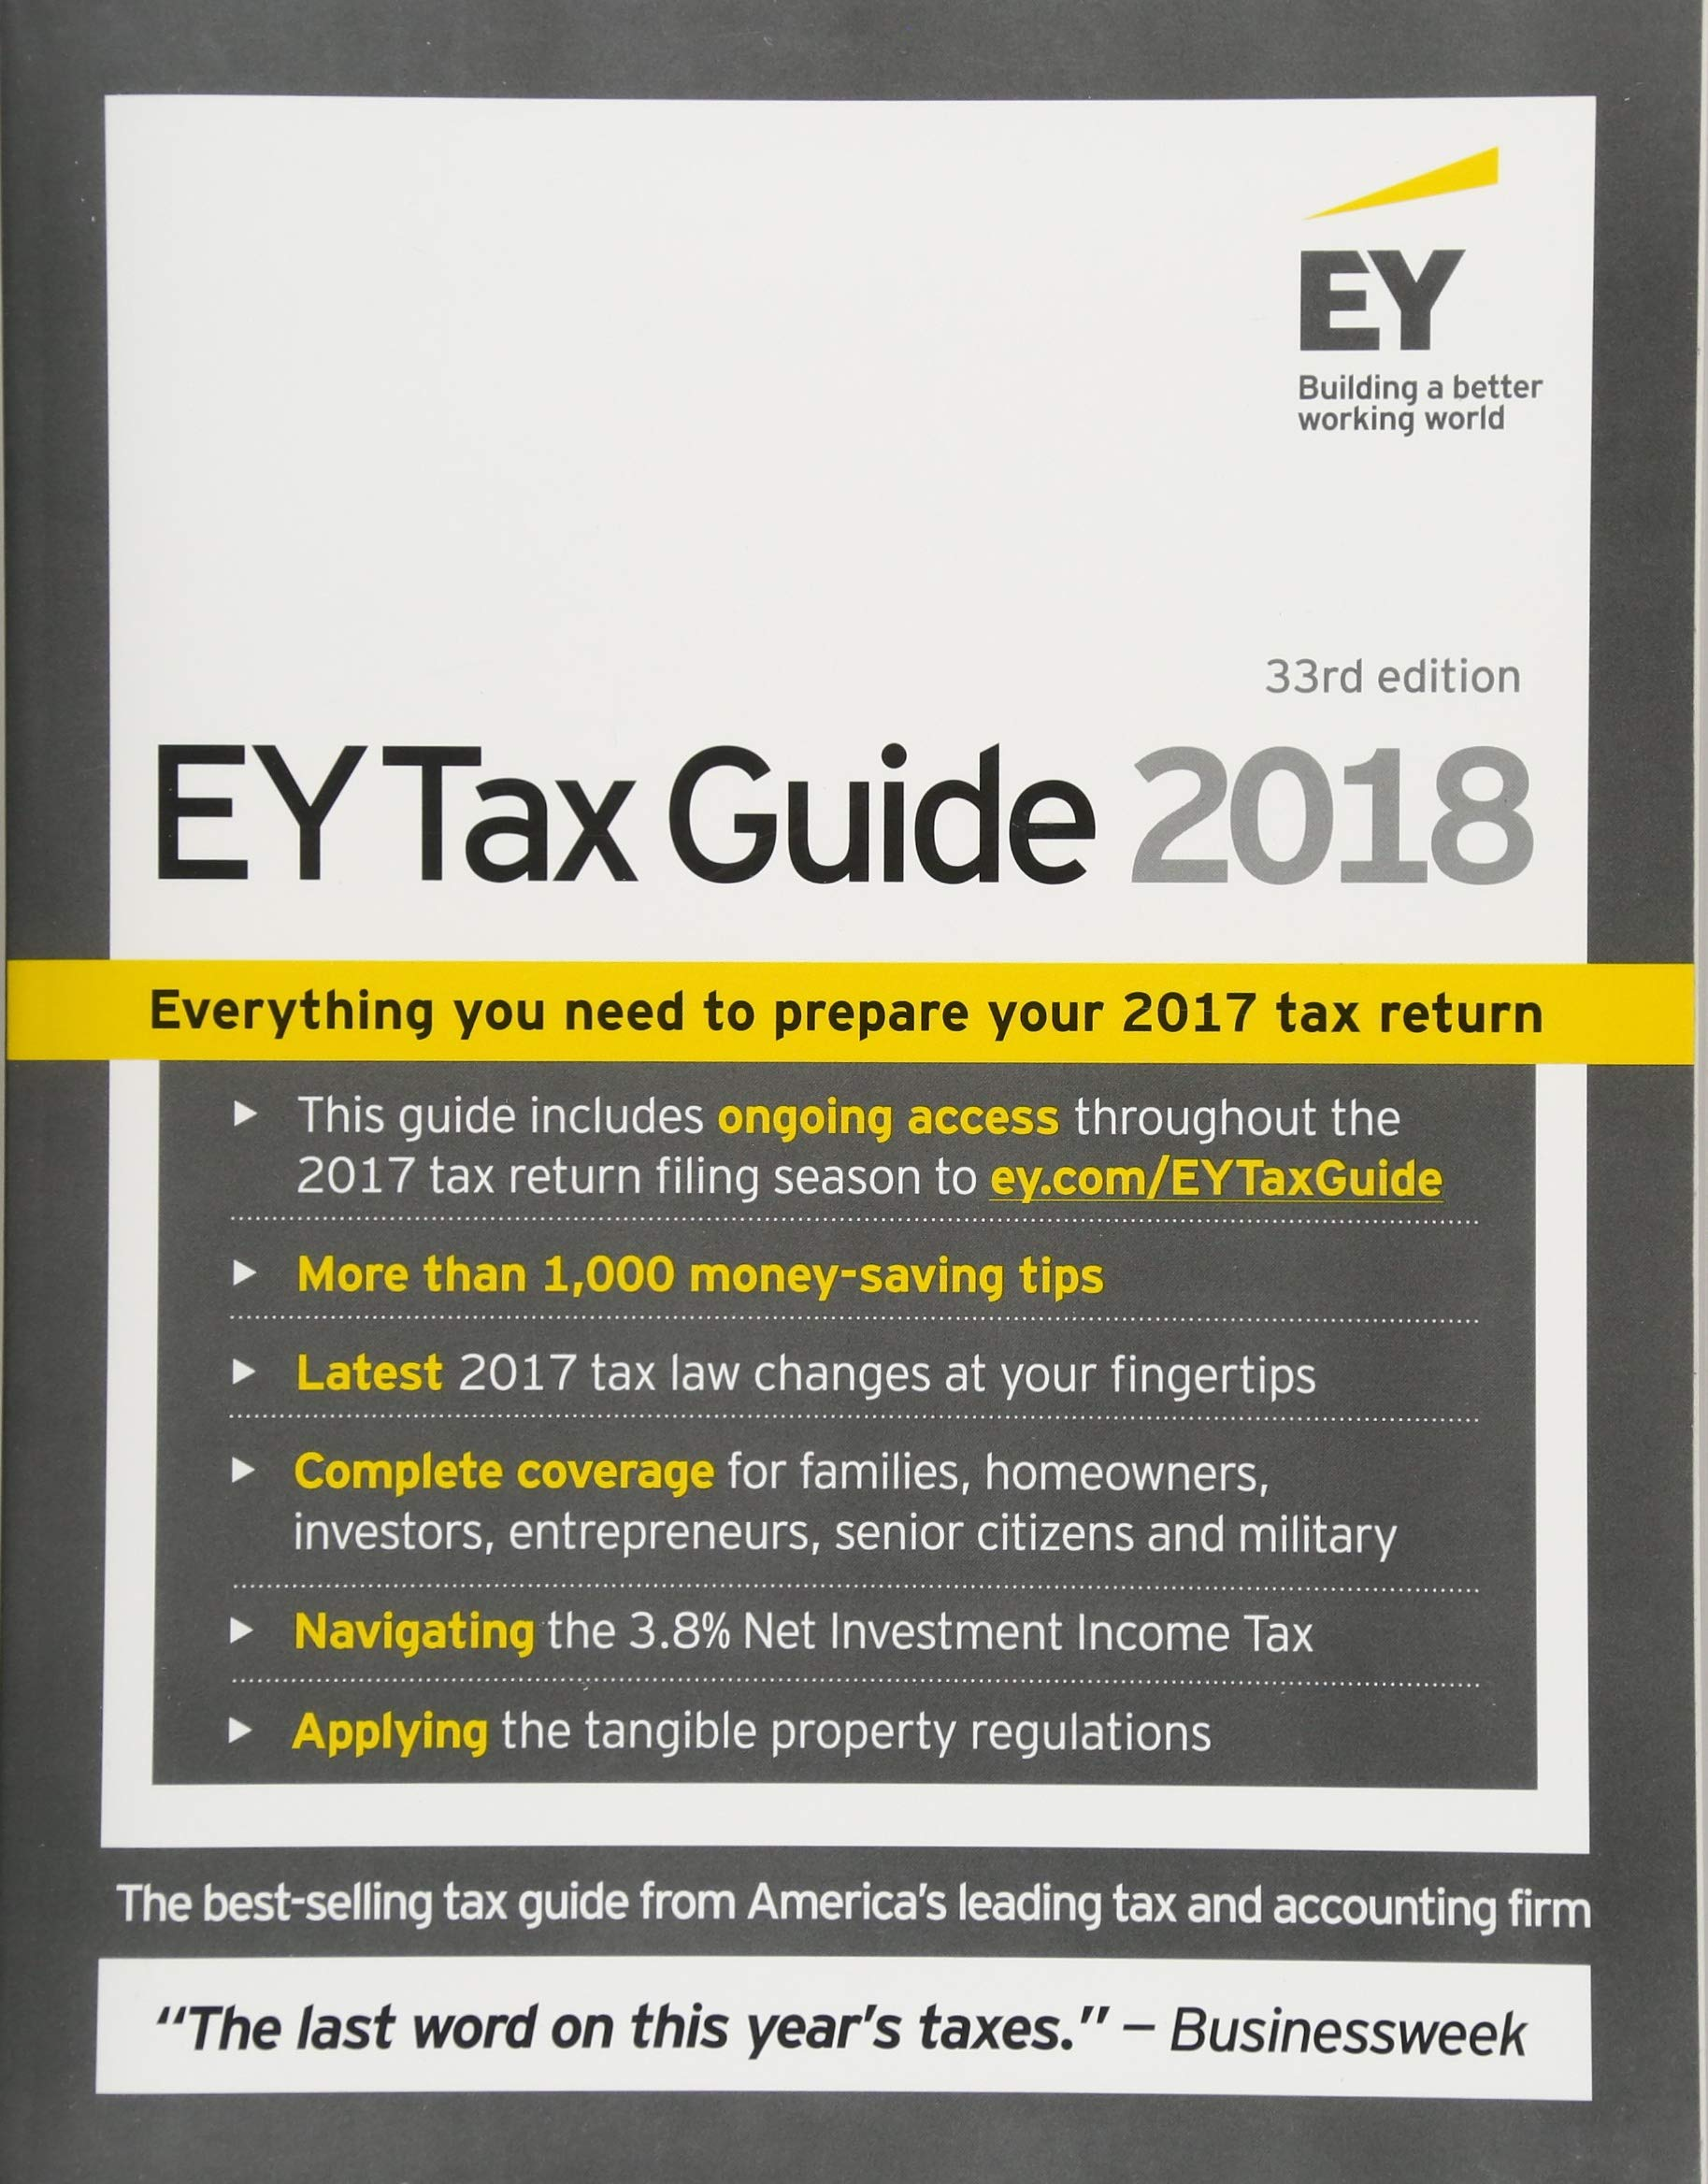 Ernst & Young Tax Guide 2018: Ernst & Young LLP